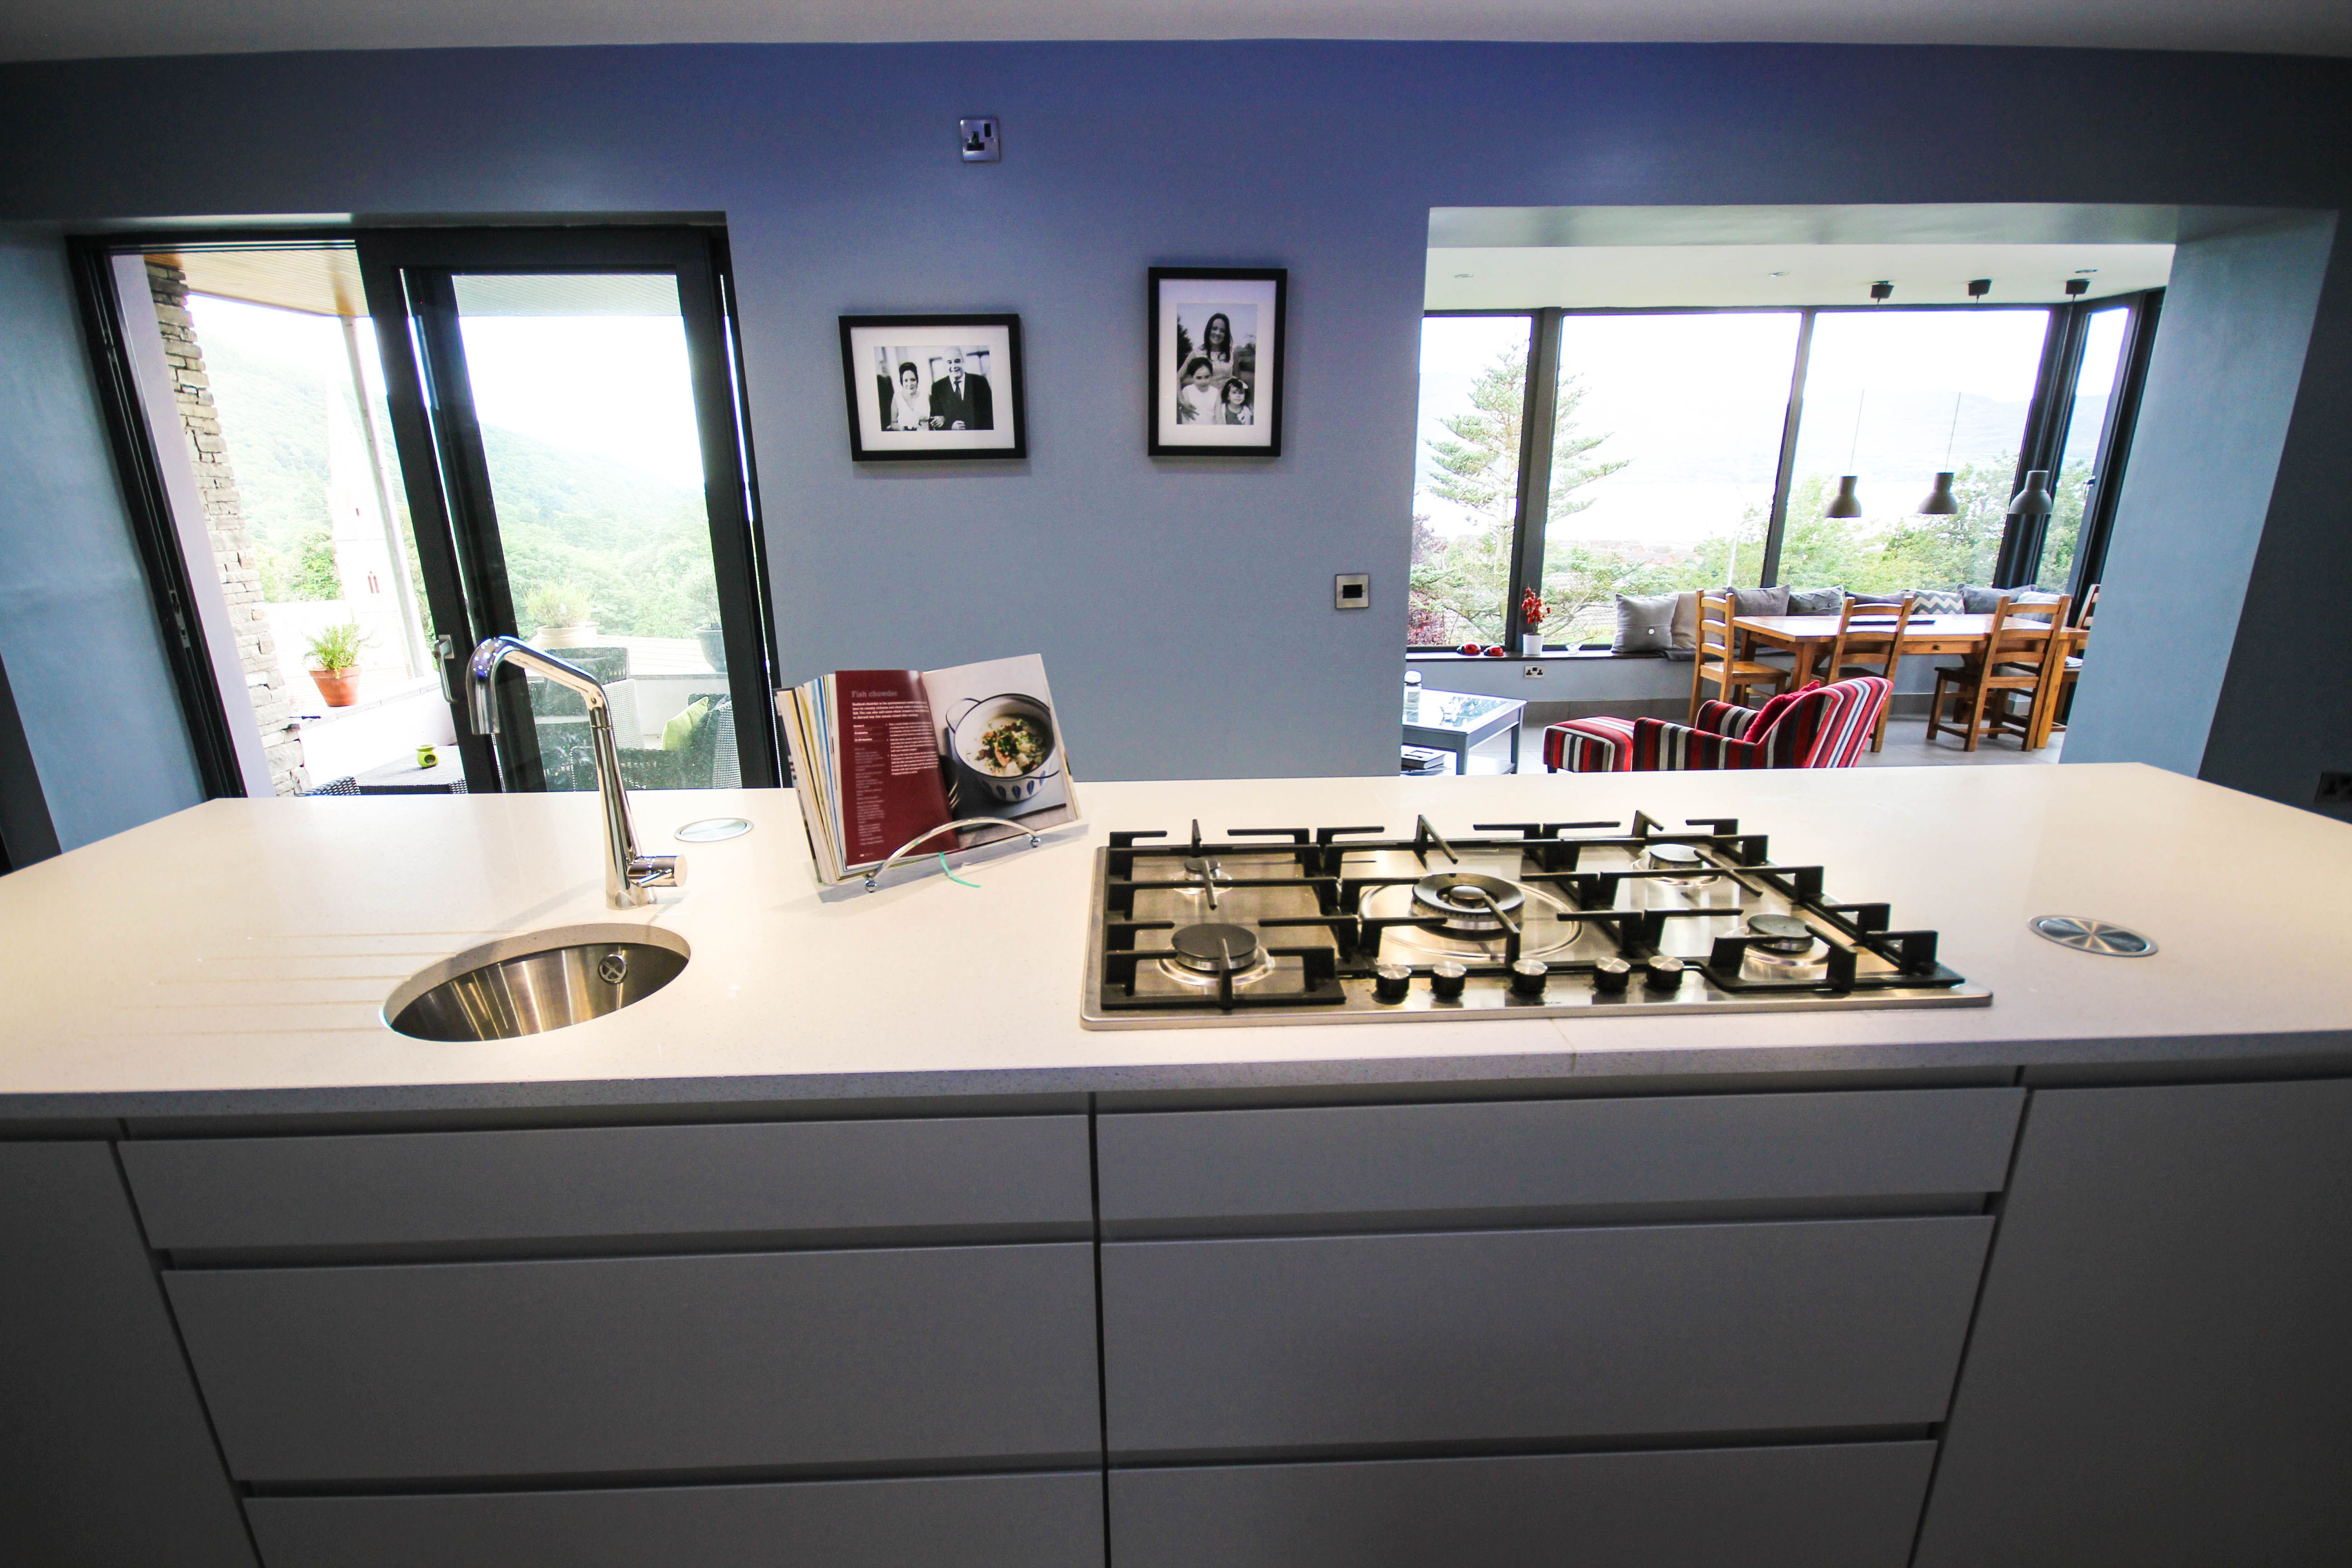 This Island Unit Combines A Gas Hob Circular Sink And